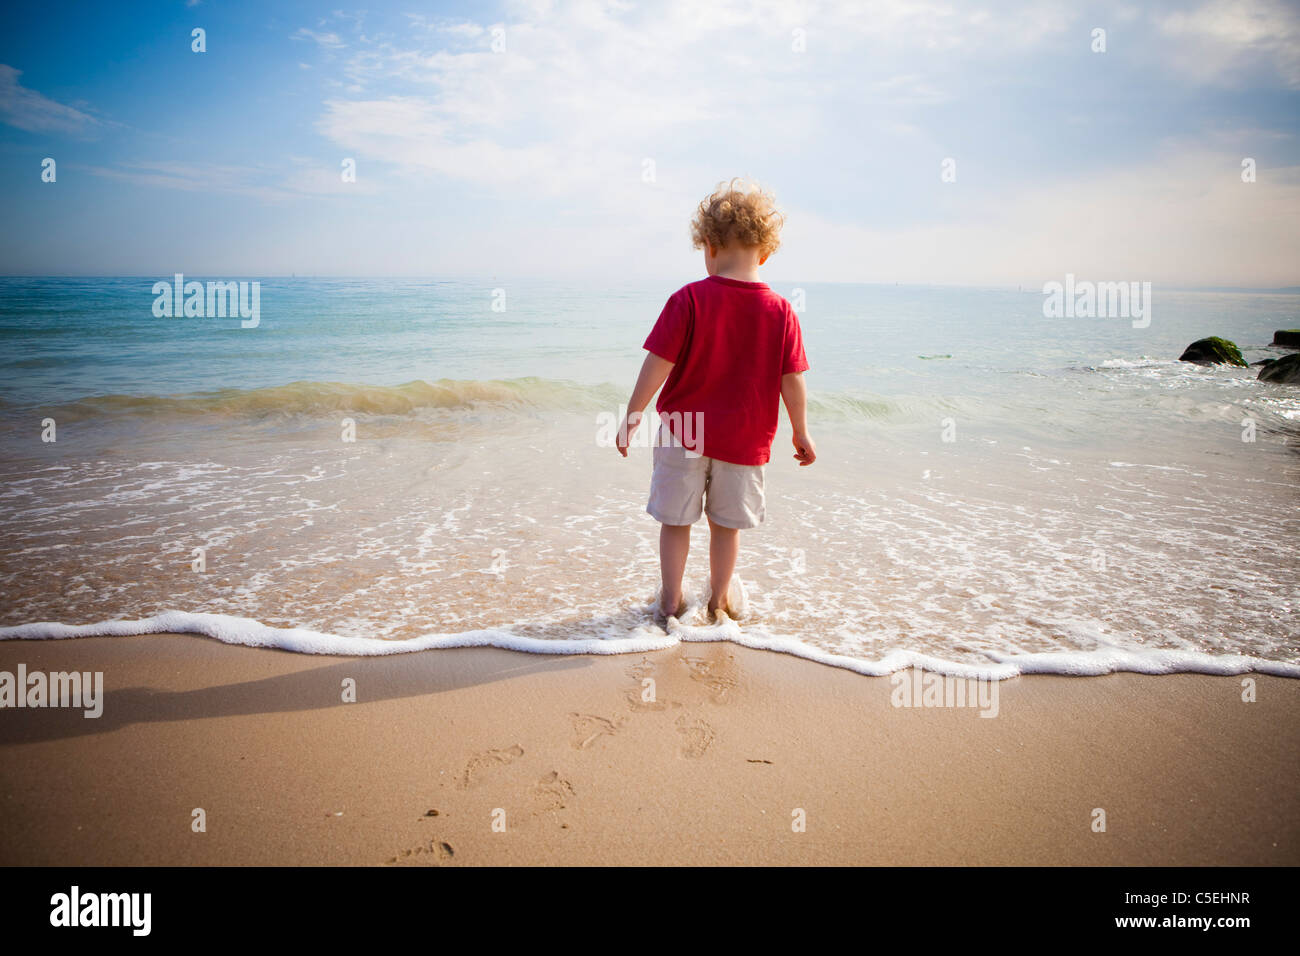 Boy standing in the sea - Stock Image